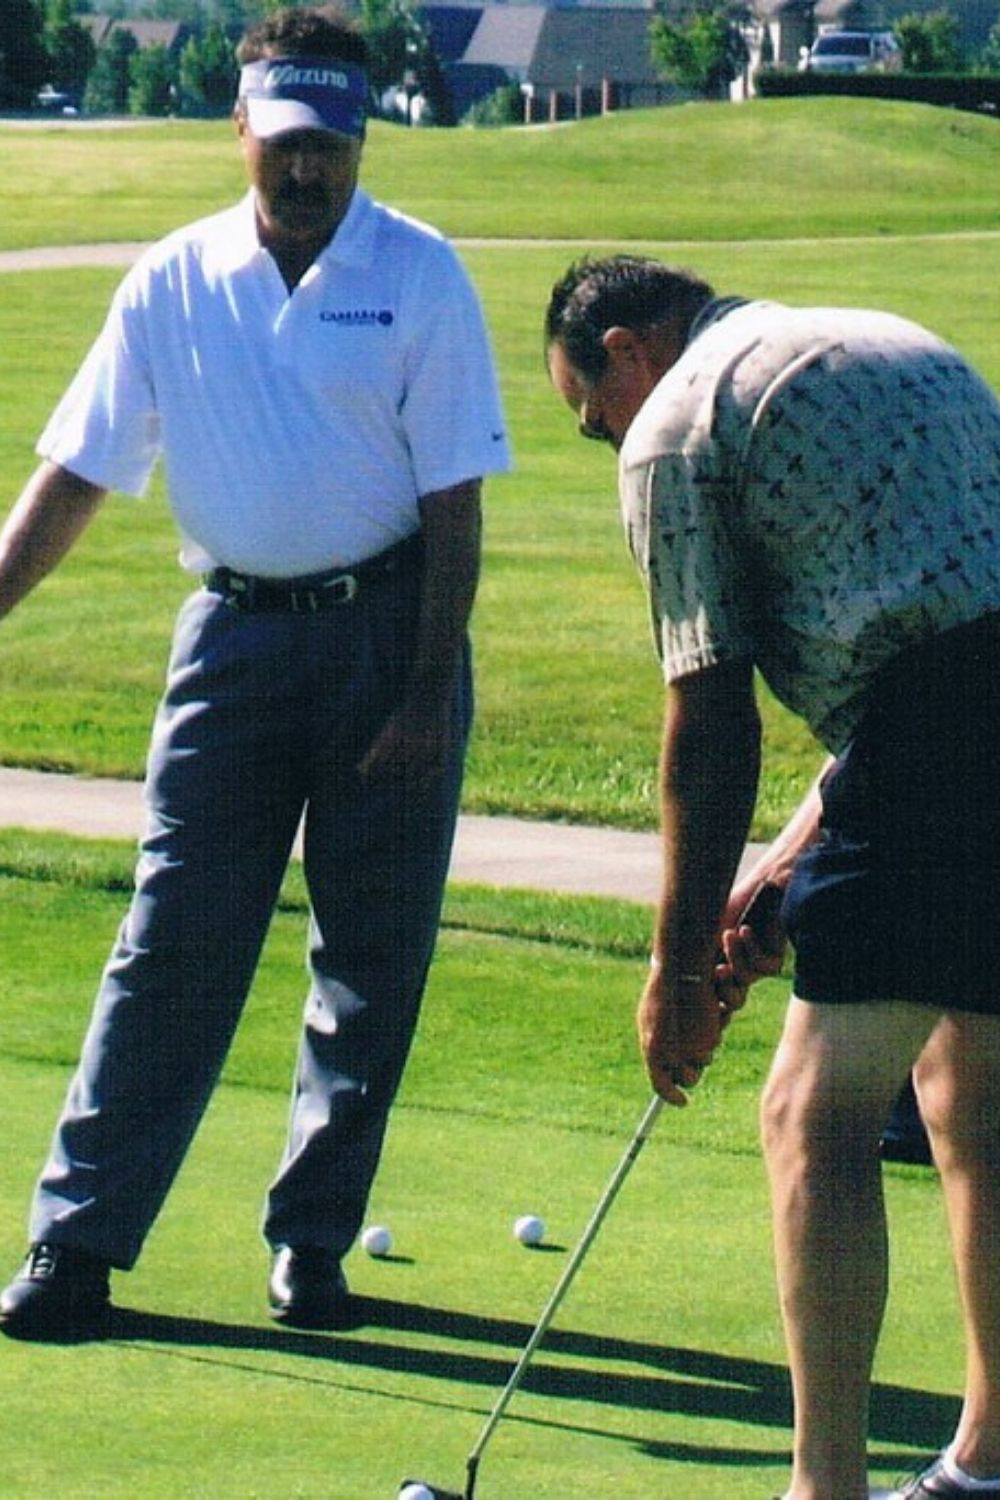 how to putt better me and my golf